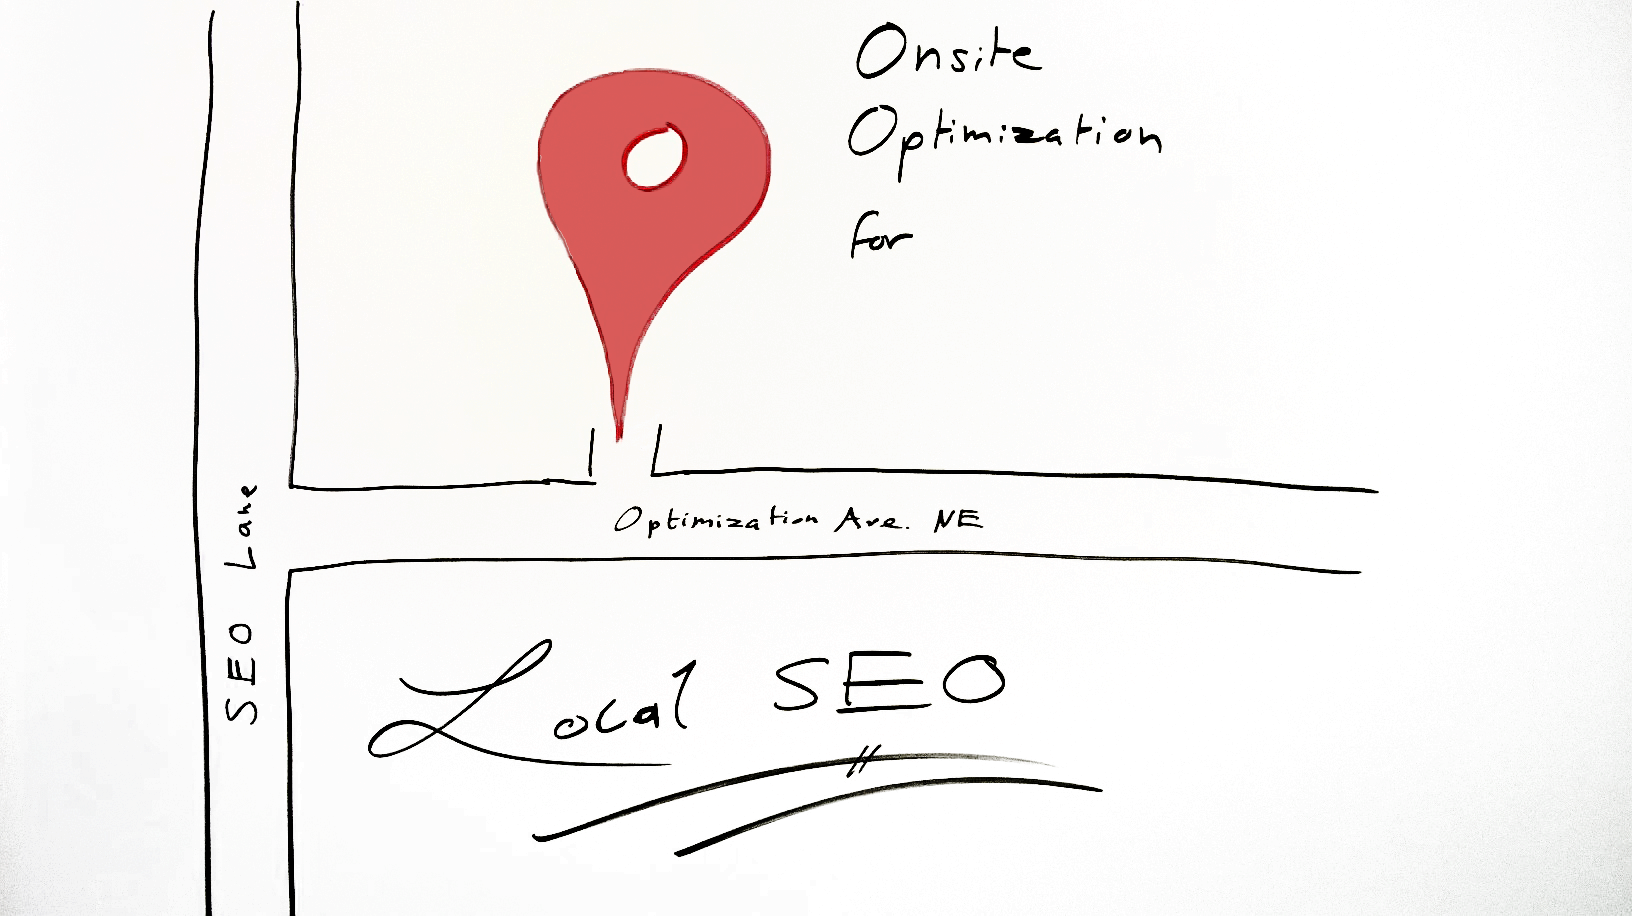 Onsite Optimization for local seo